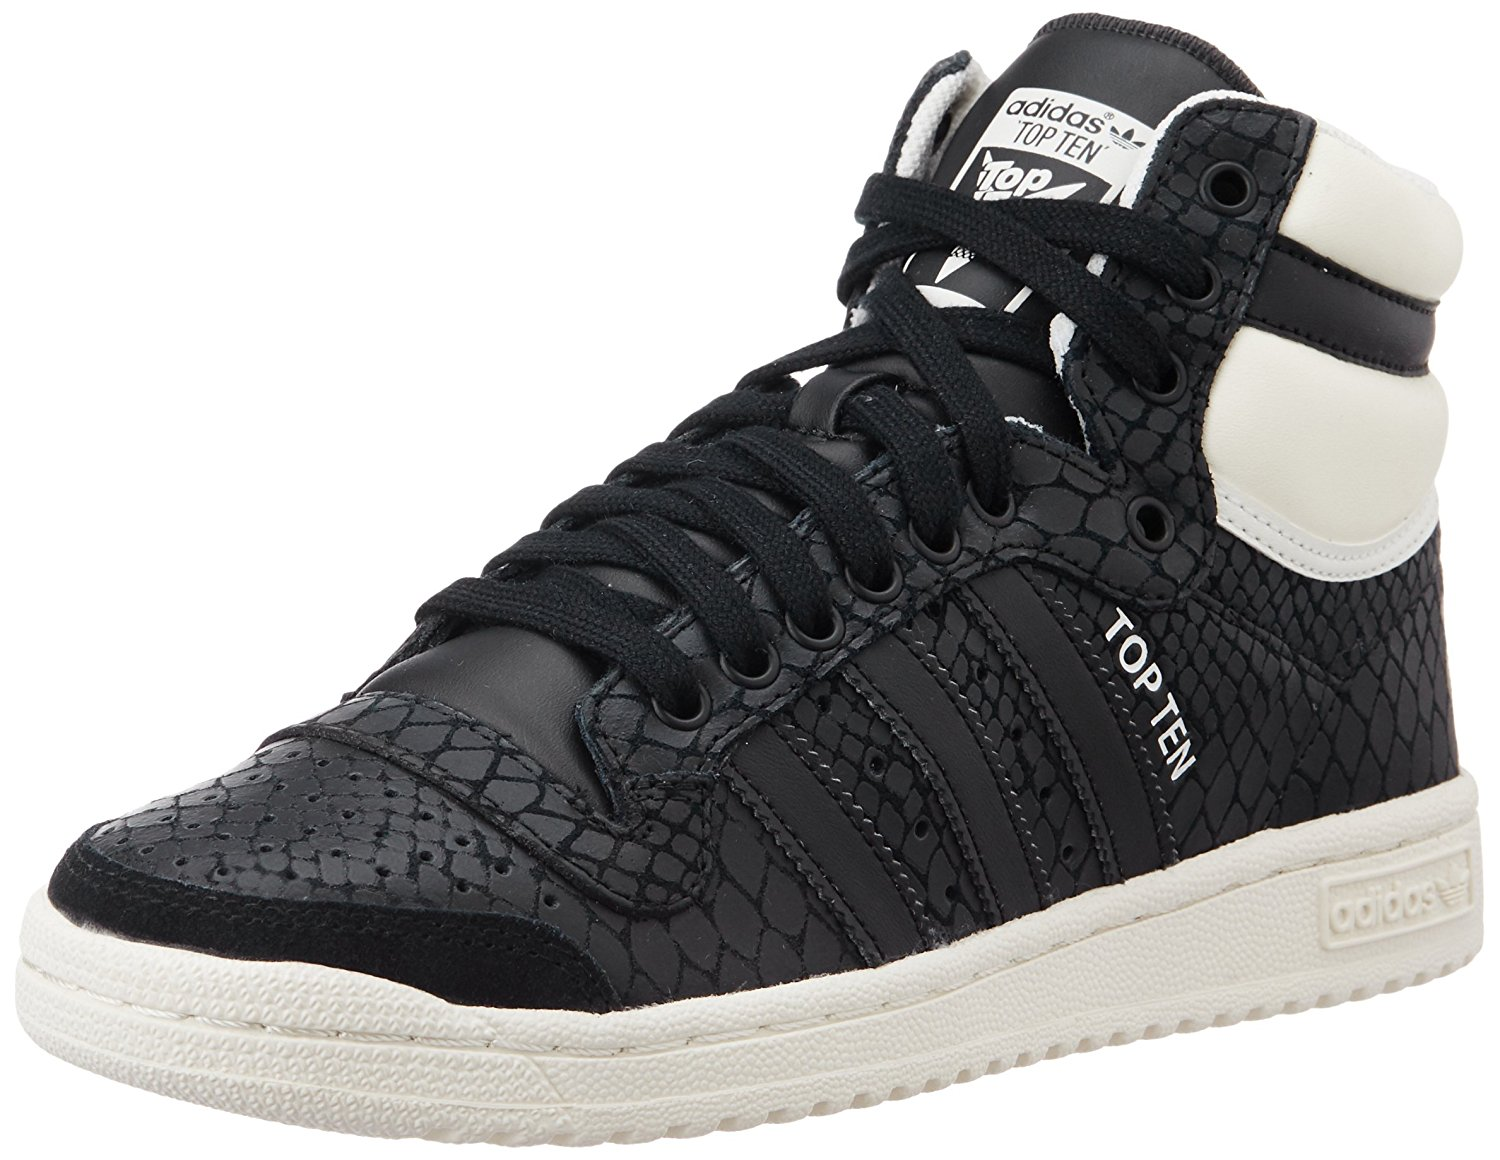 best service 63646 c025f adidas Damen Top Ten Hi Basketballschuhe 40 2 3 EUSchwarz (Core Black Core  Black Off White) - sommerprogramme.de